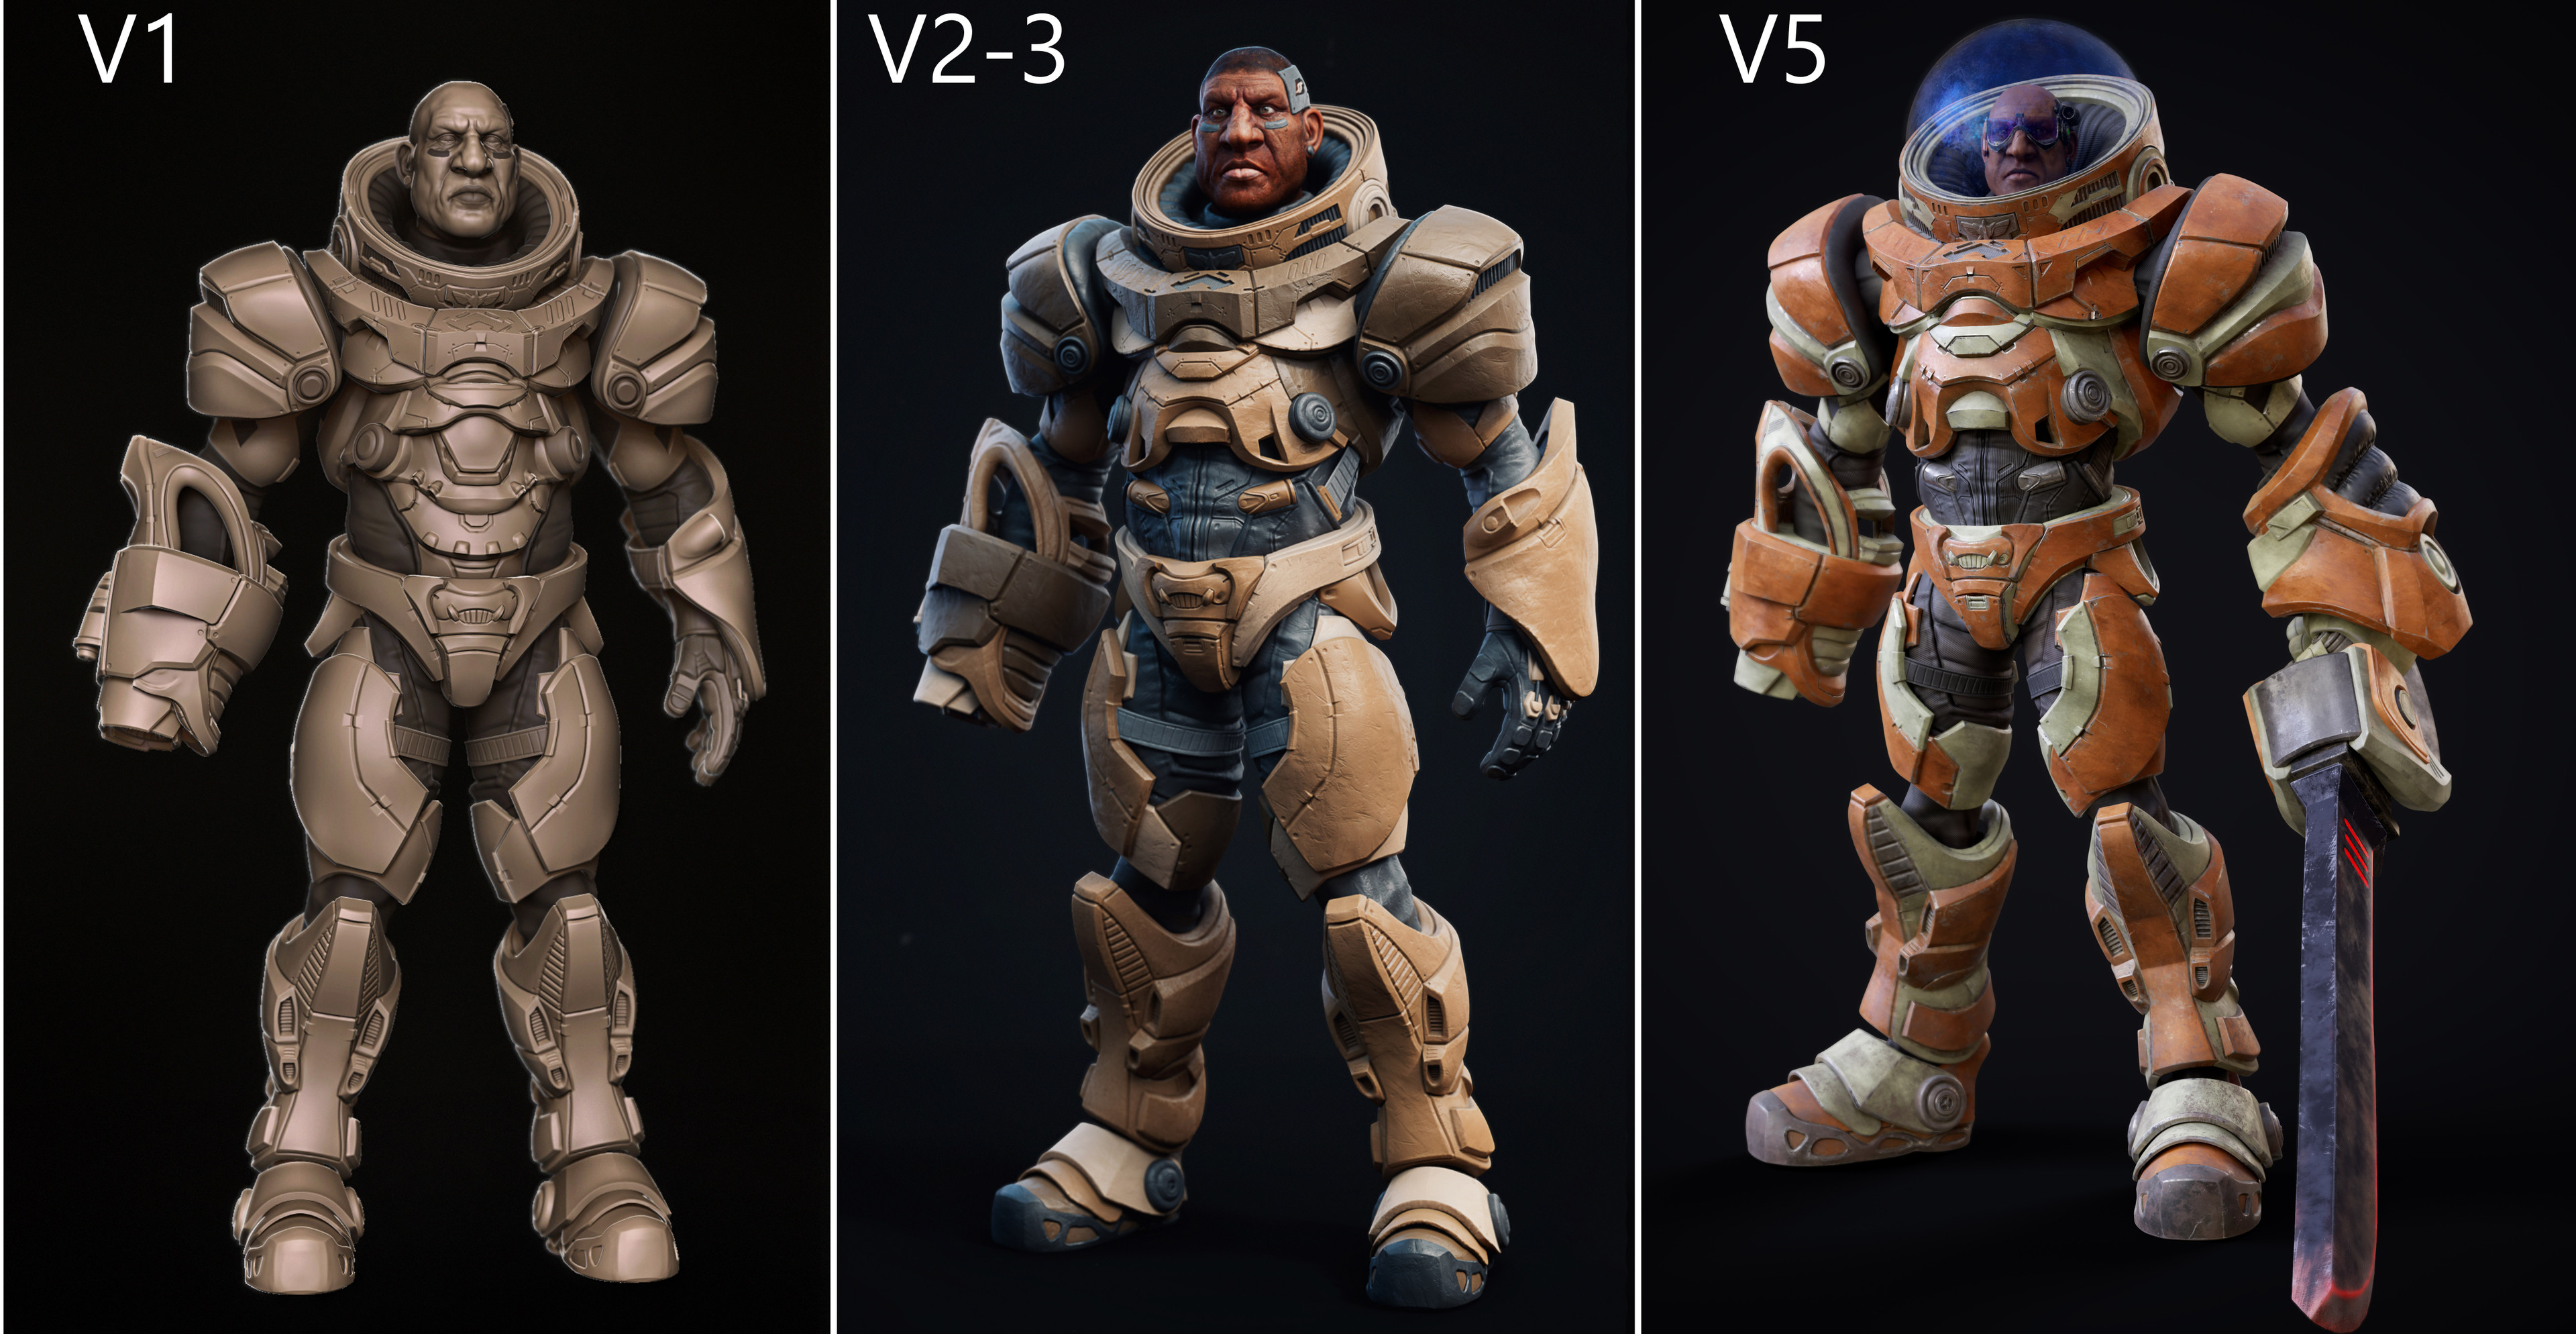 3 versions created during the all process